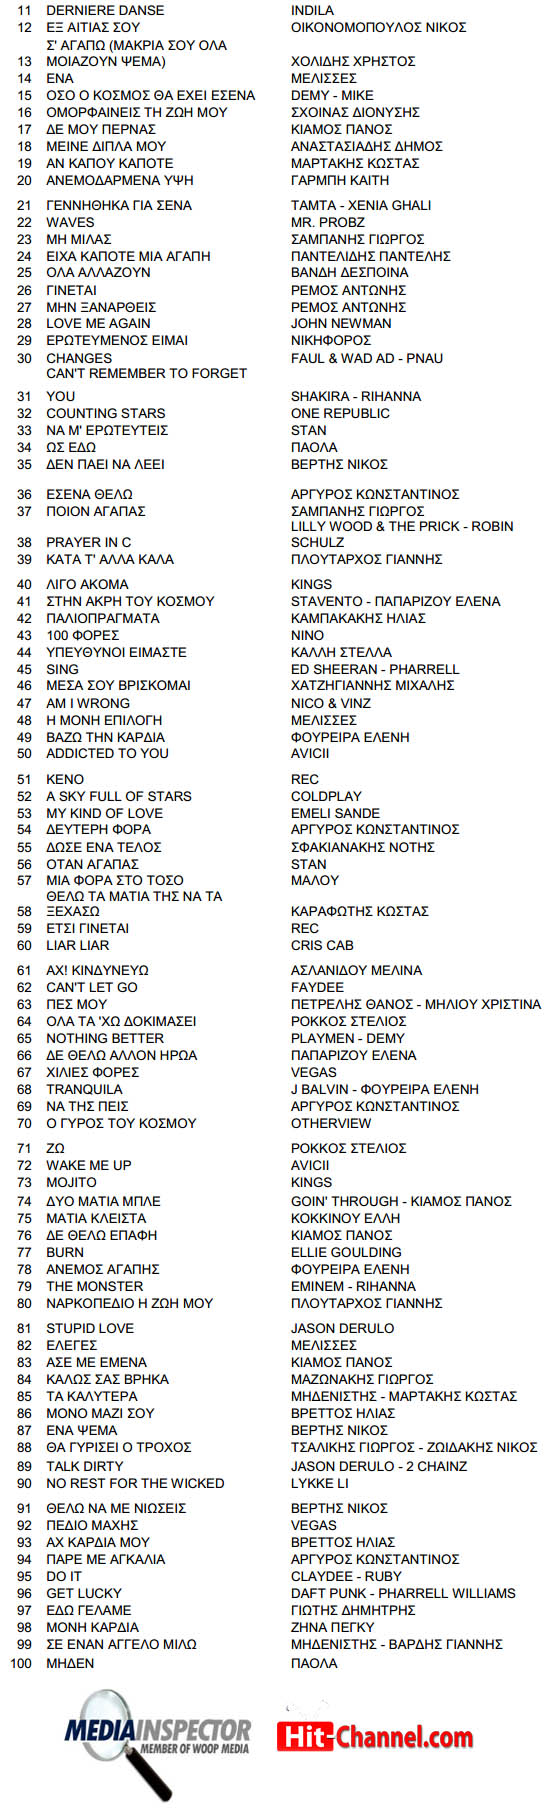 Greek Radio Top 200 Airplay Chart 2014 - MediaInspector (11-100)